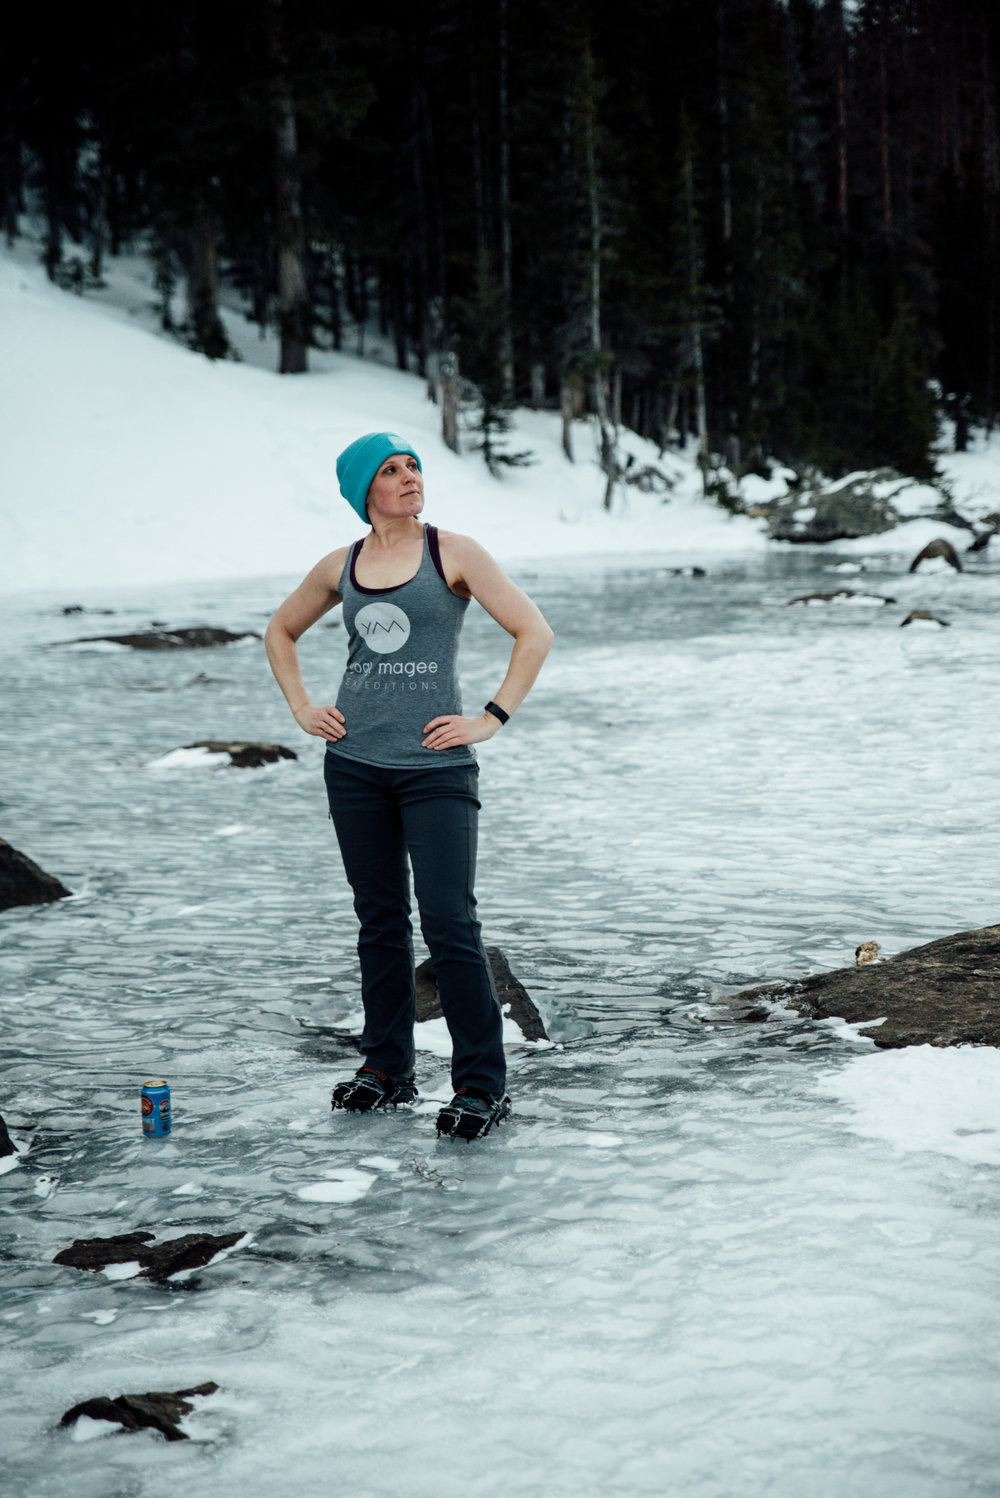 As a thank you to Natalie, Rachael rocking the Yogi Magee gear on a frozen Dream Lake.